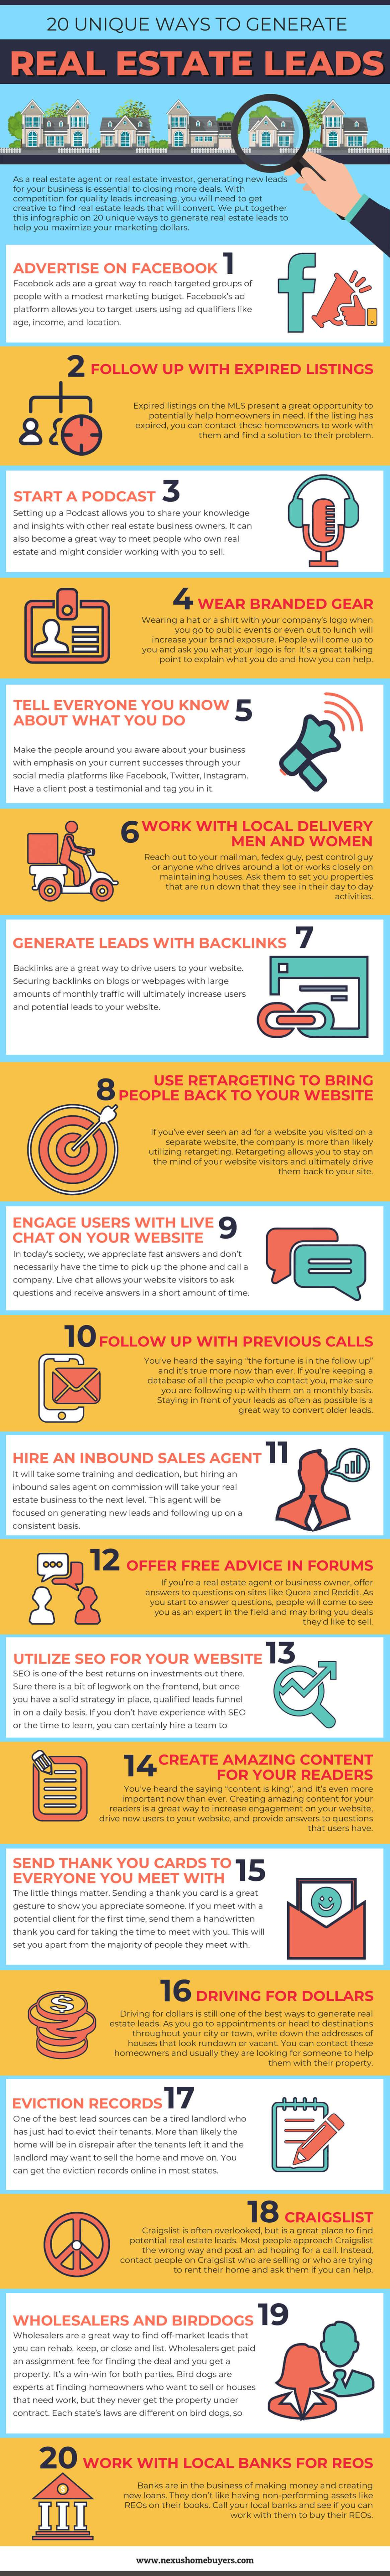 20 Unique Ways to Generate Seller Leads